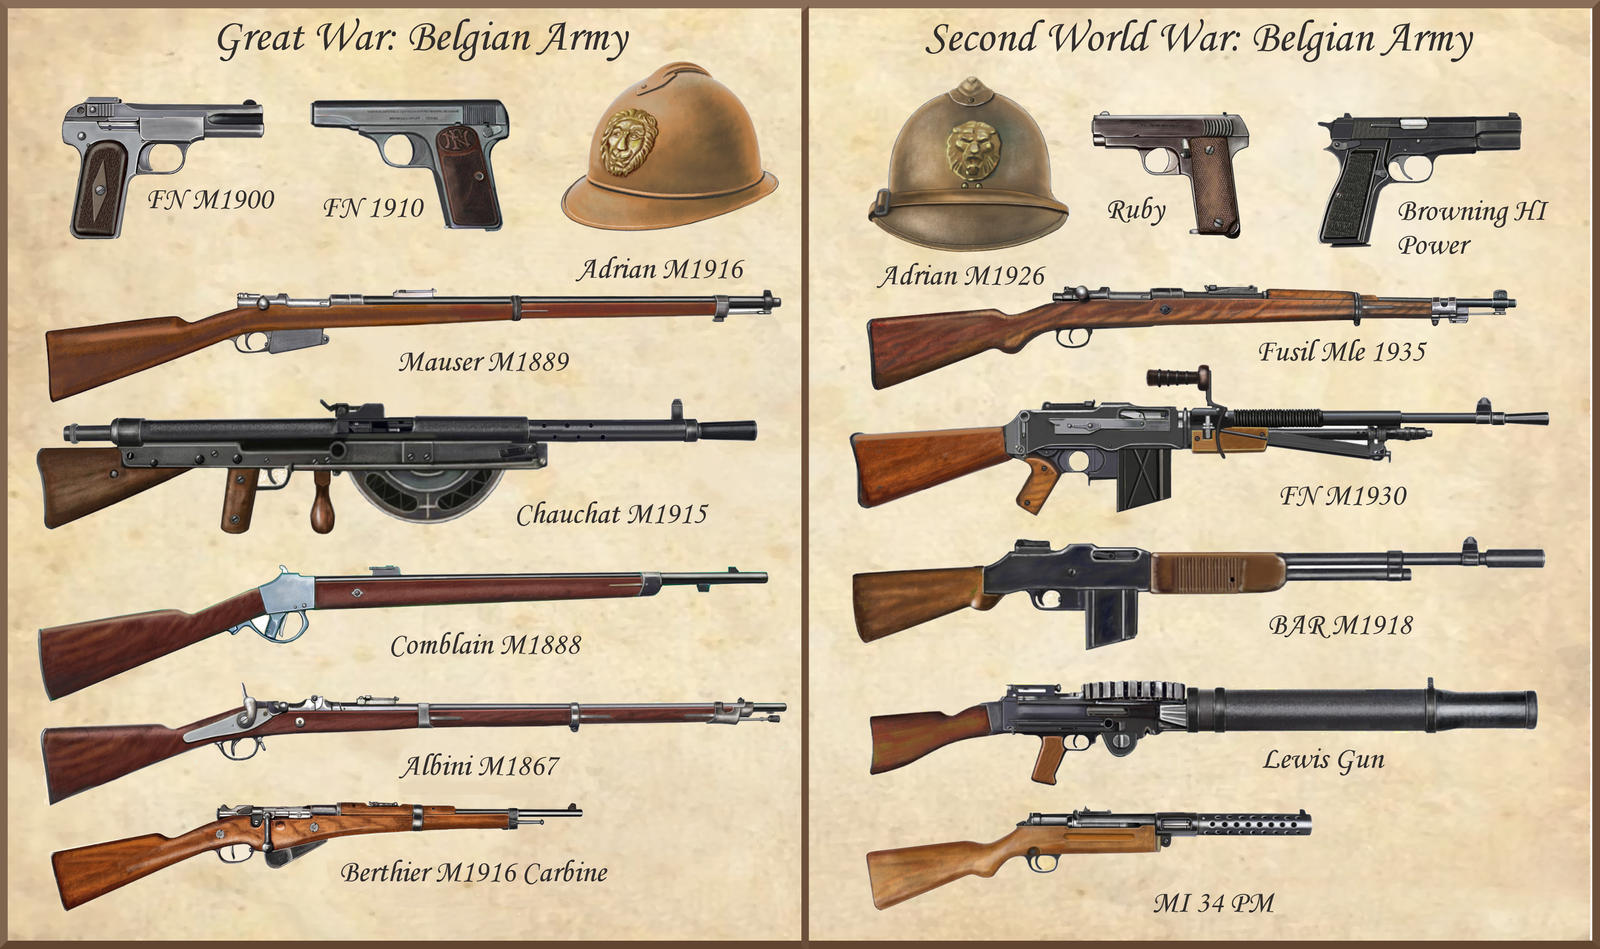 ww1 - ww2 Belgian Weapons by AndreaSilva60 on DeviantArt